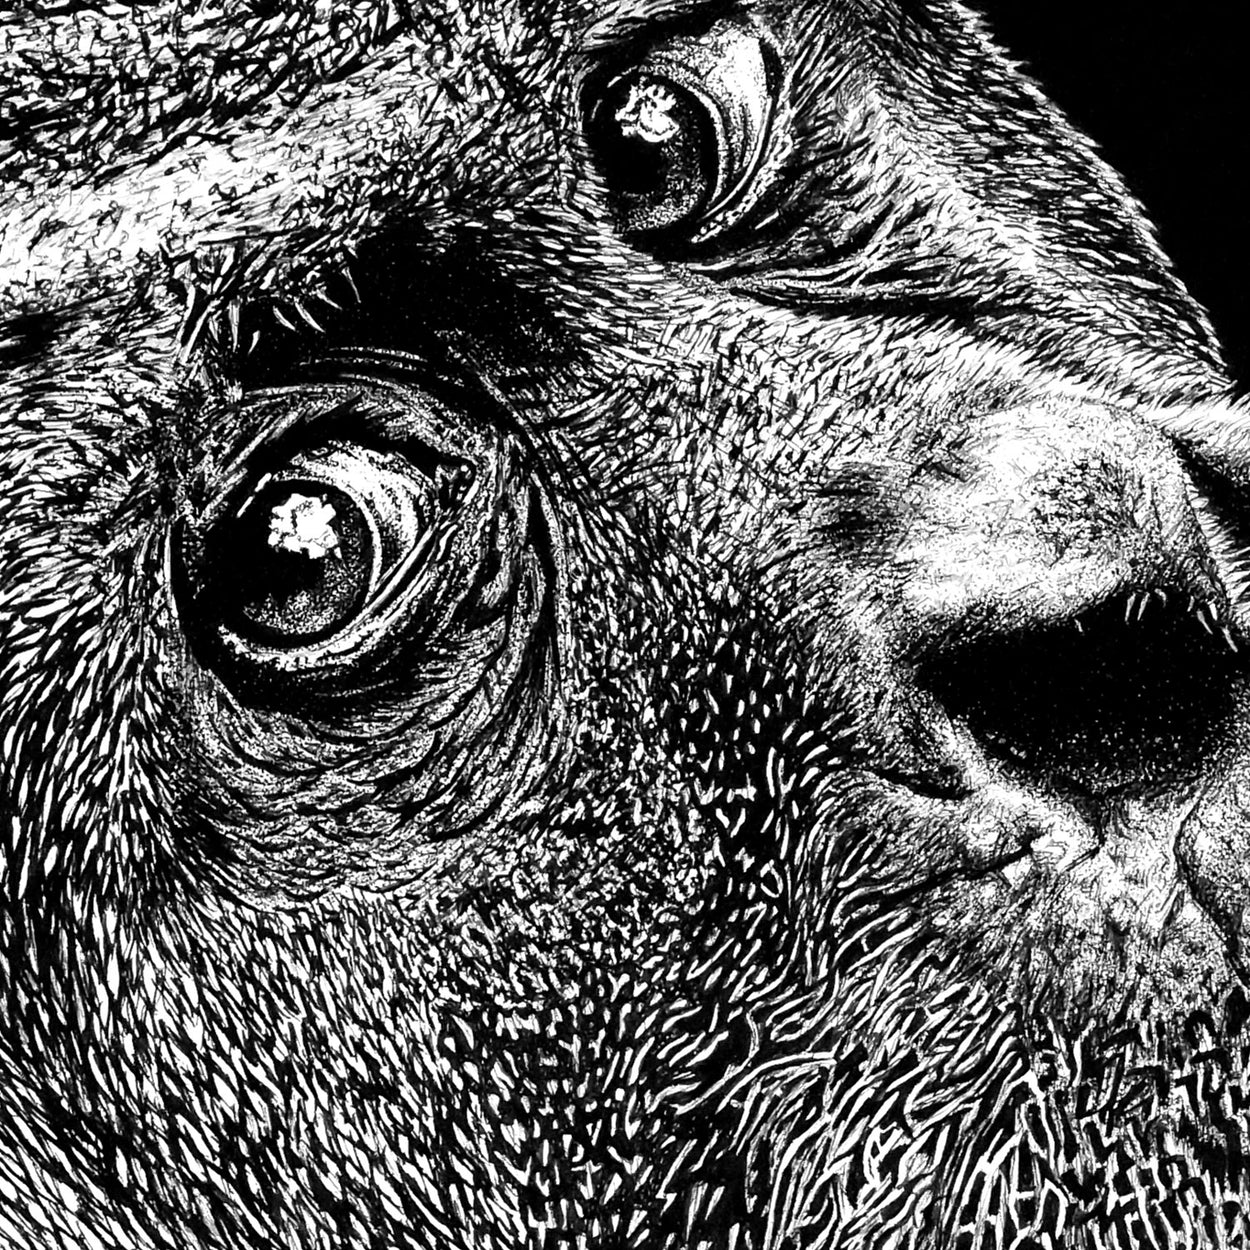 Orangutan Pen Drawing Close-up - The Thriving Wild